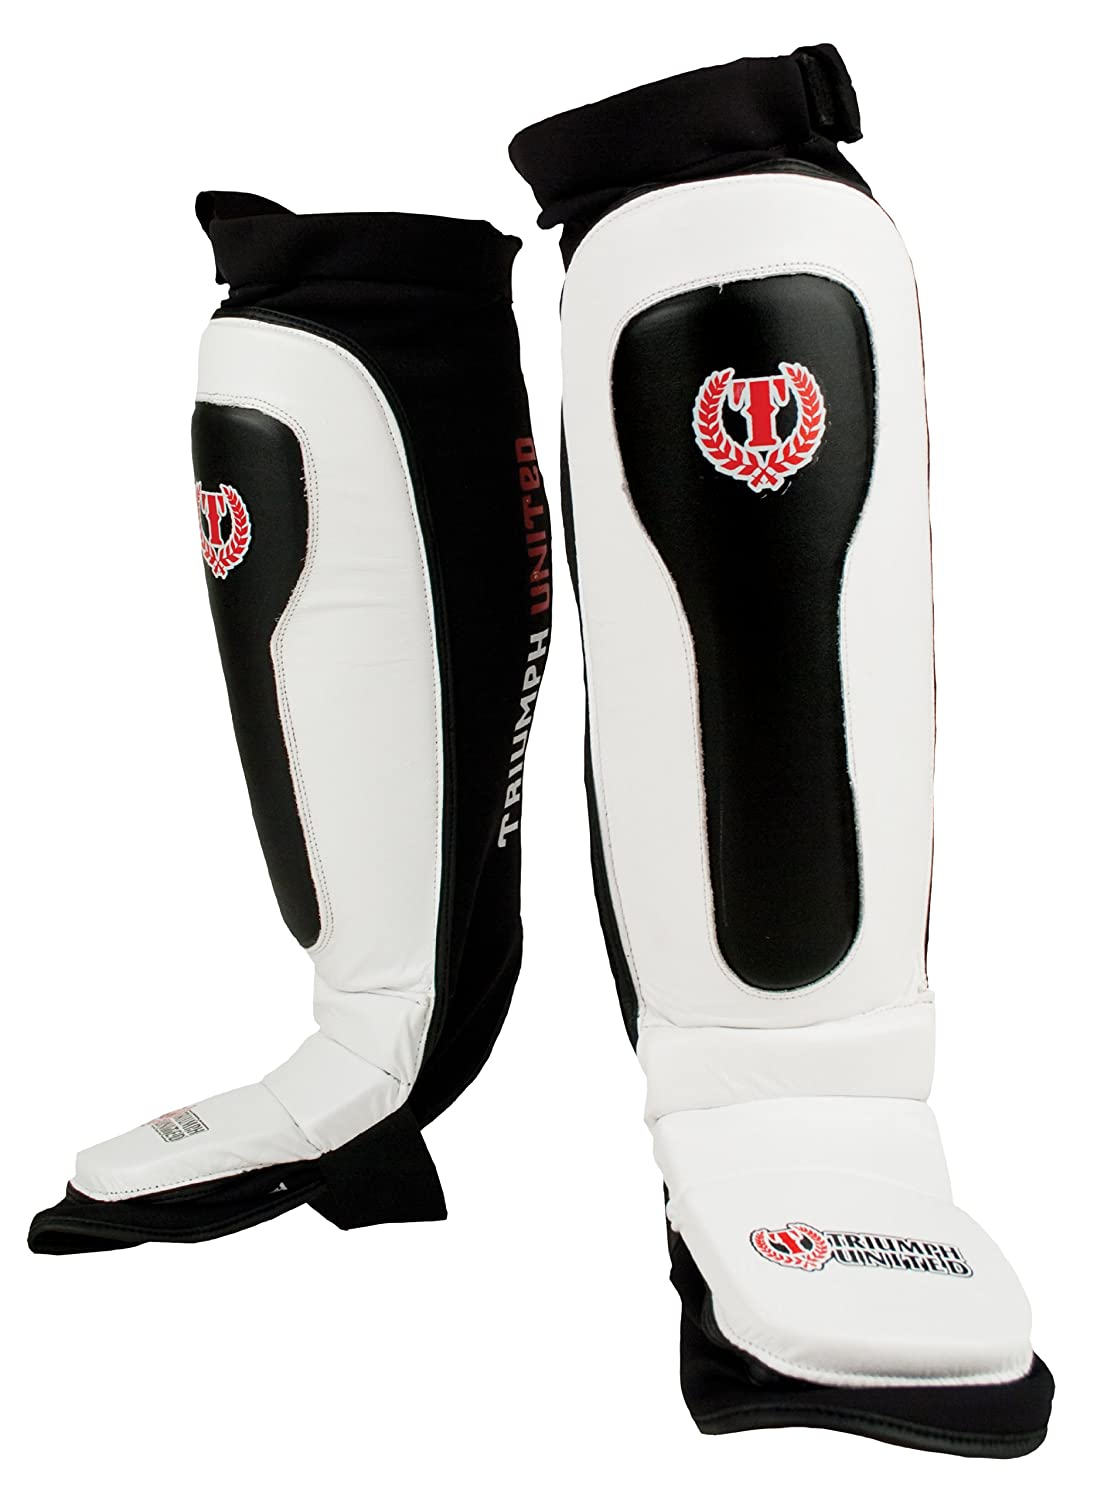 Triumph United Storm Trooper Trooper Grappling Storm MMA Shin Guards XX-Large Triumph B00GBHXLWU, 油谷町:6eca8243 --- capela.dominiotemporario.com